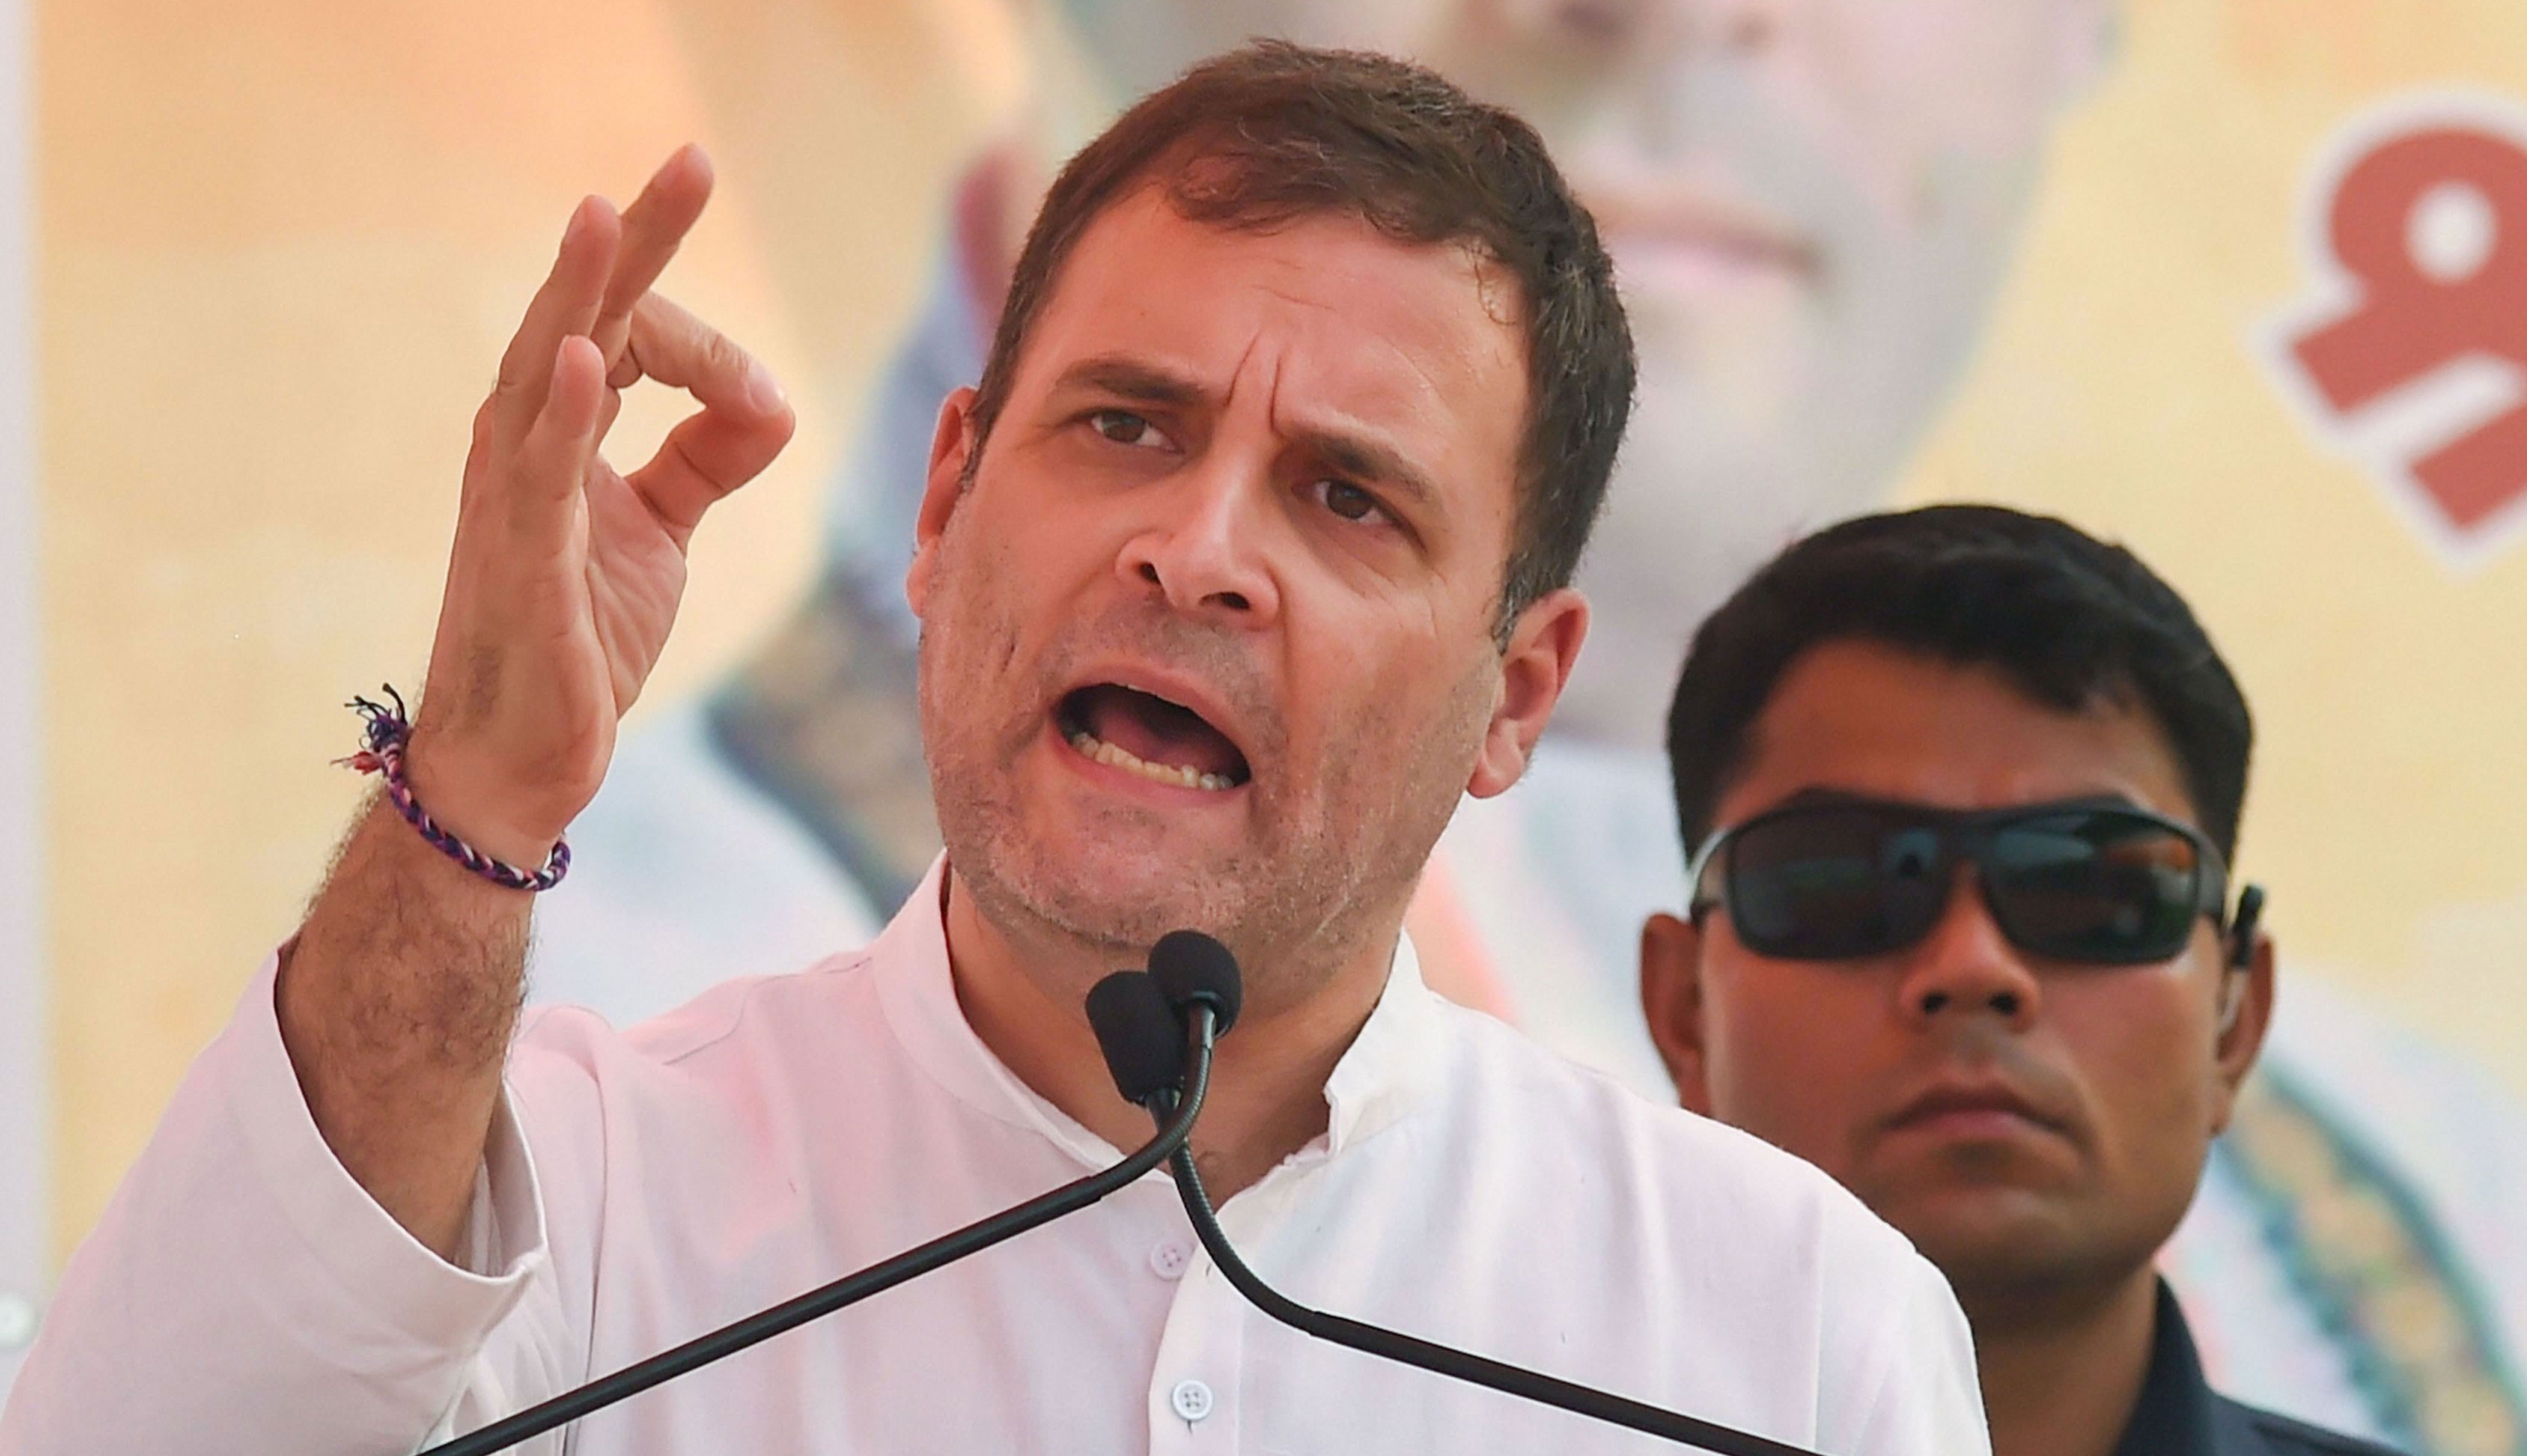 Rahul Gandhi speaks during a rally ahead of Haryana Assembly polls in Nuh district on October 14, 2019.